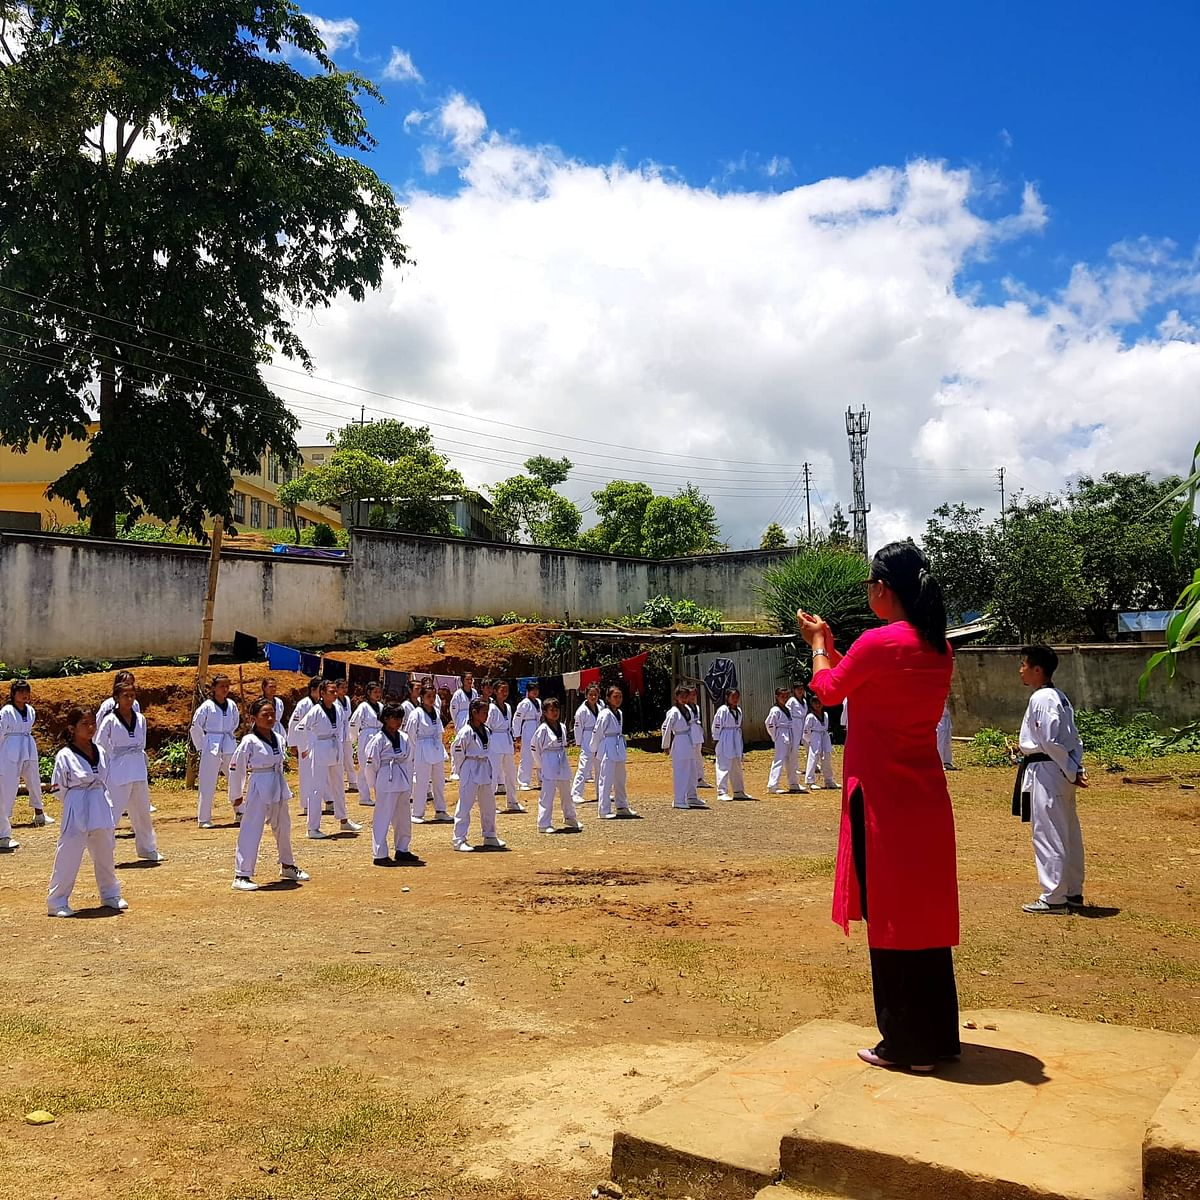 The five-member team of Craft Gallery is also involved in imparting self-defence classes to girls in the town under the 'Beti Bachao Beti Padhao' initiative